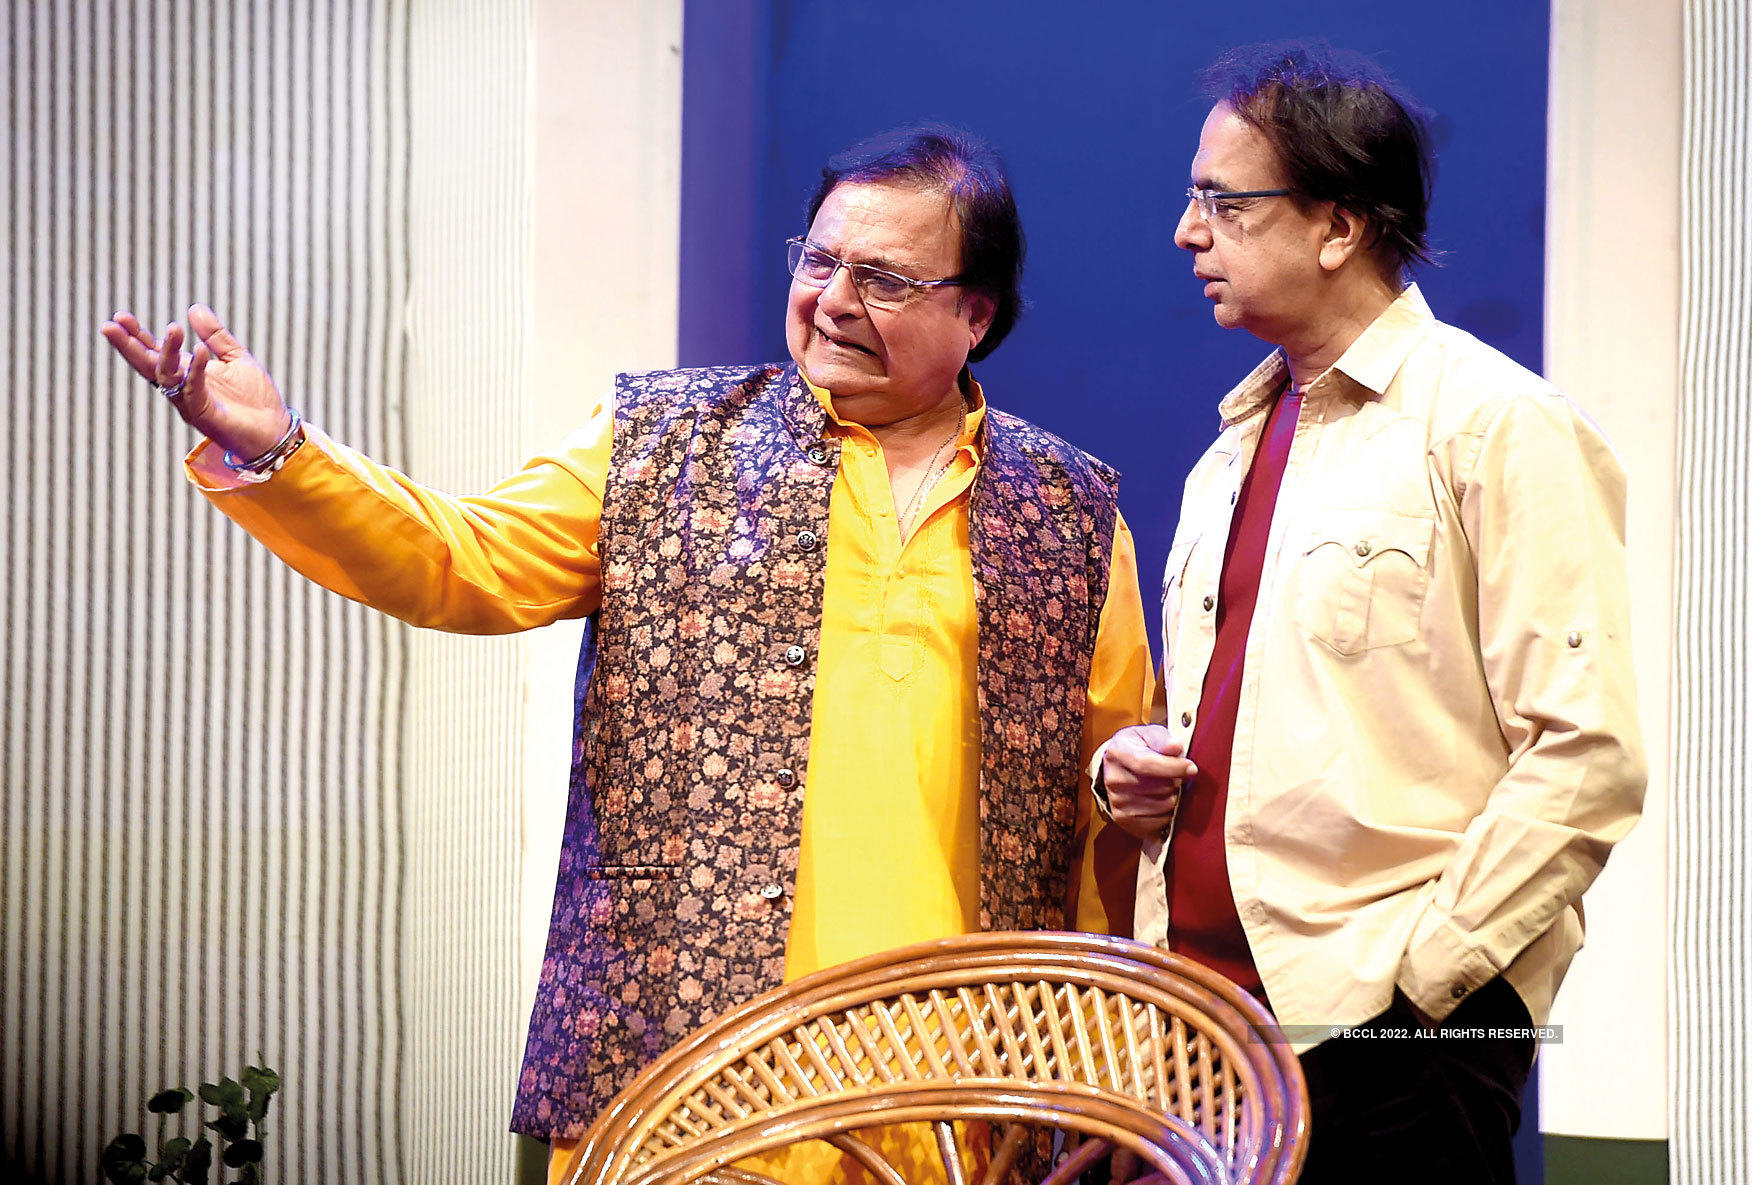 Rakesh Bedi and Anant Mahadevan in a scene from the play